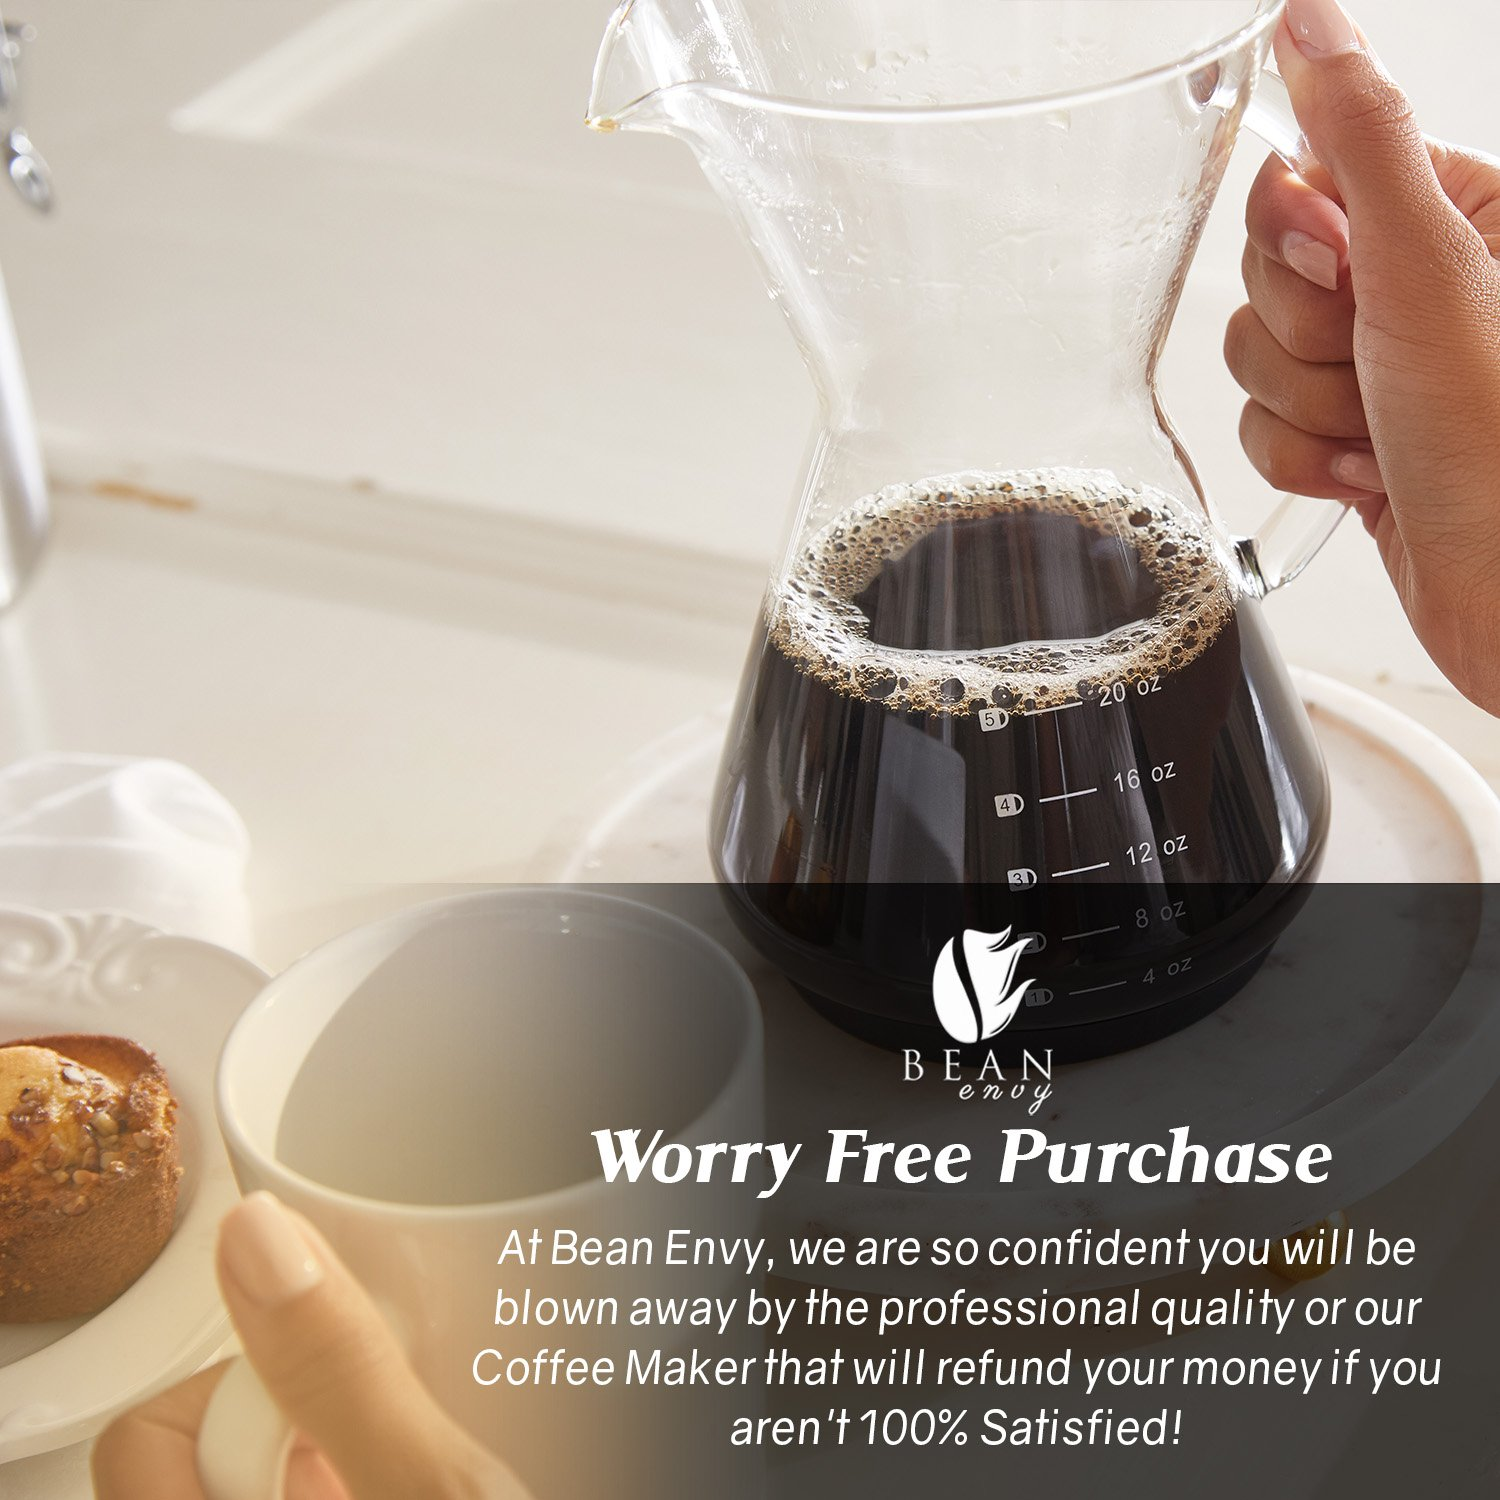 Bean Envy Pour Over Coffee Maker - 20 - oz Borosilicate Glass Carafe - Rust Resistant Stainless Steel Paperless Filter/Dripper - Includes Patent Pending Silicone Sleeve by Bean Envy (Image #7)